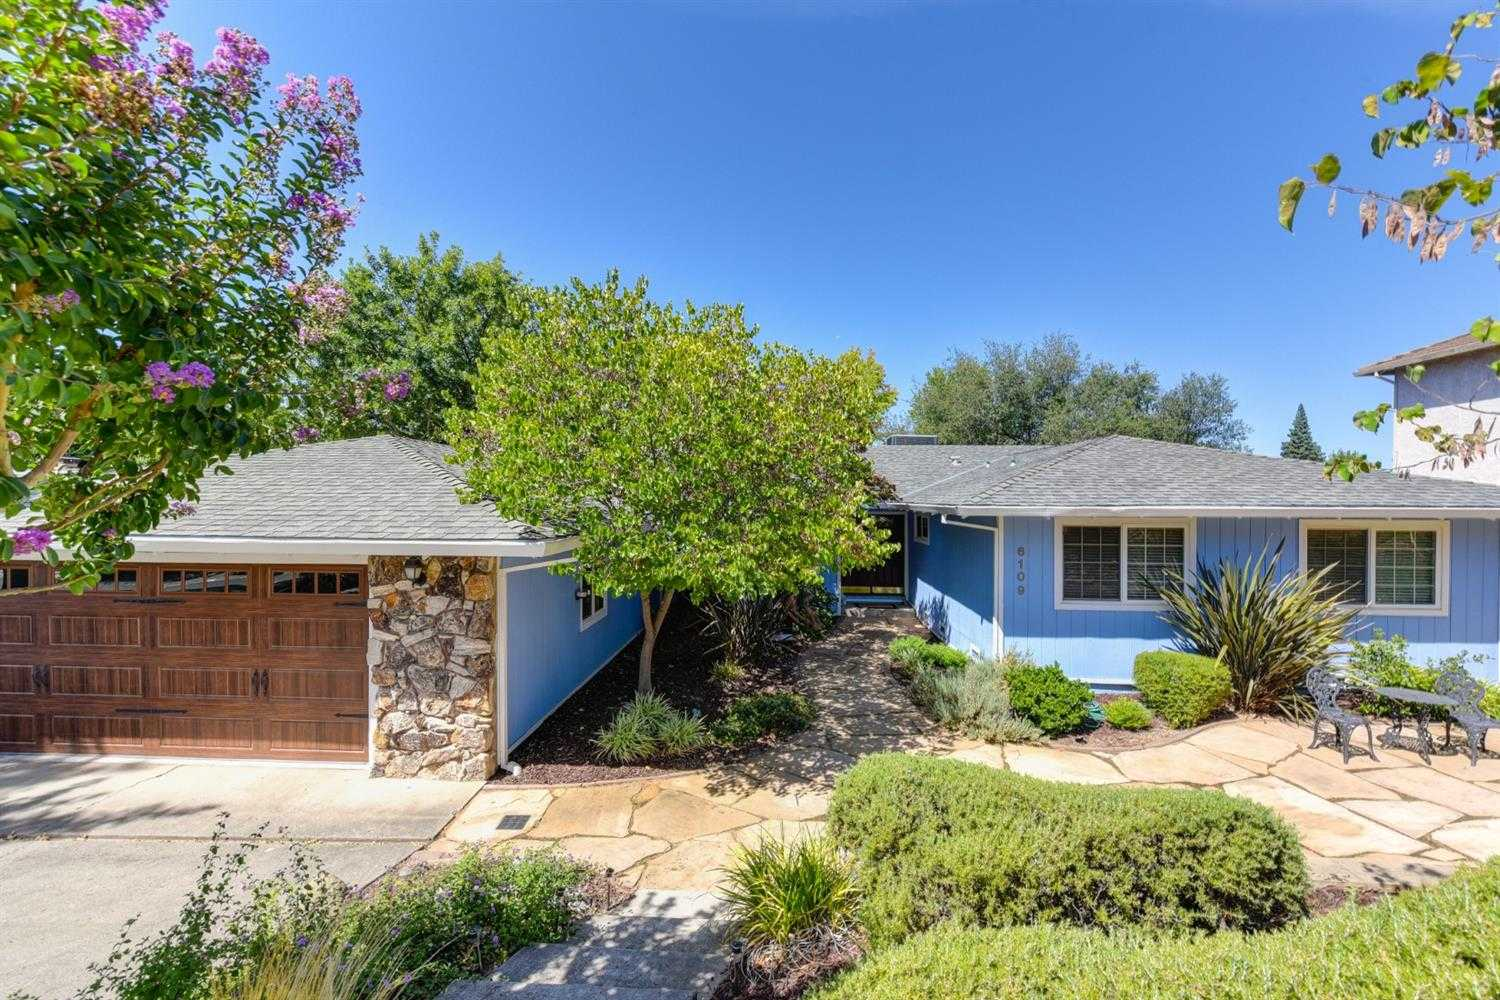 $495,000 - 4Br/3Ba -  for Sale in Foothill Oaks, Fair Oaks